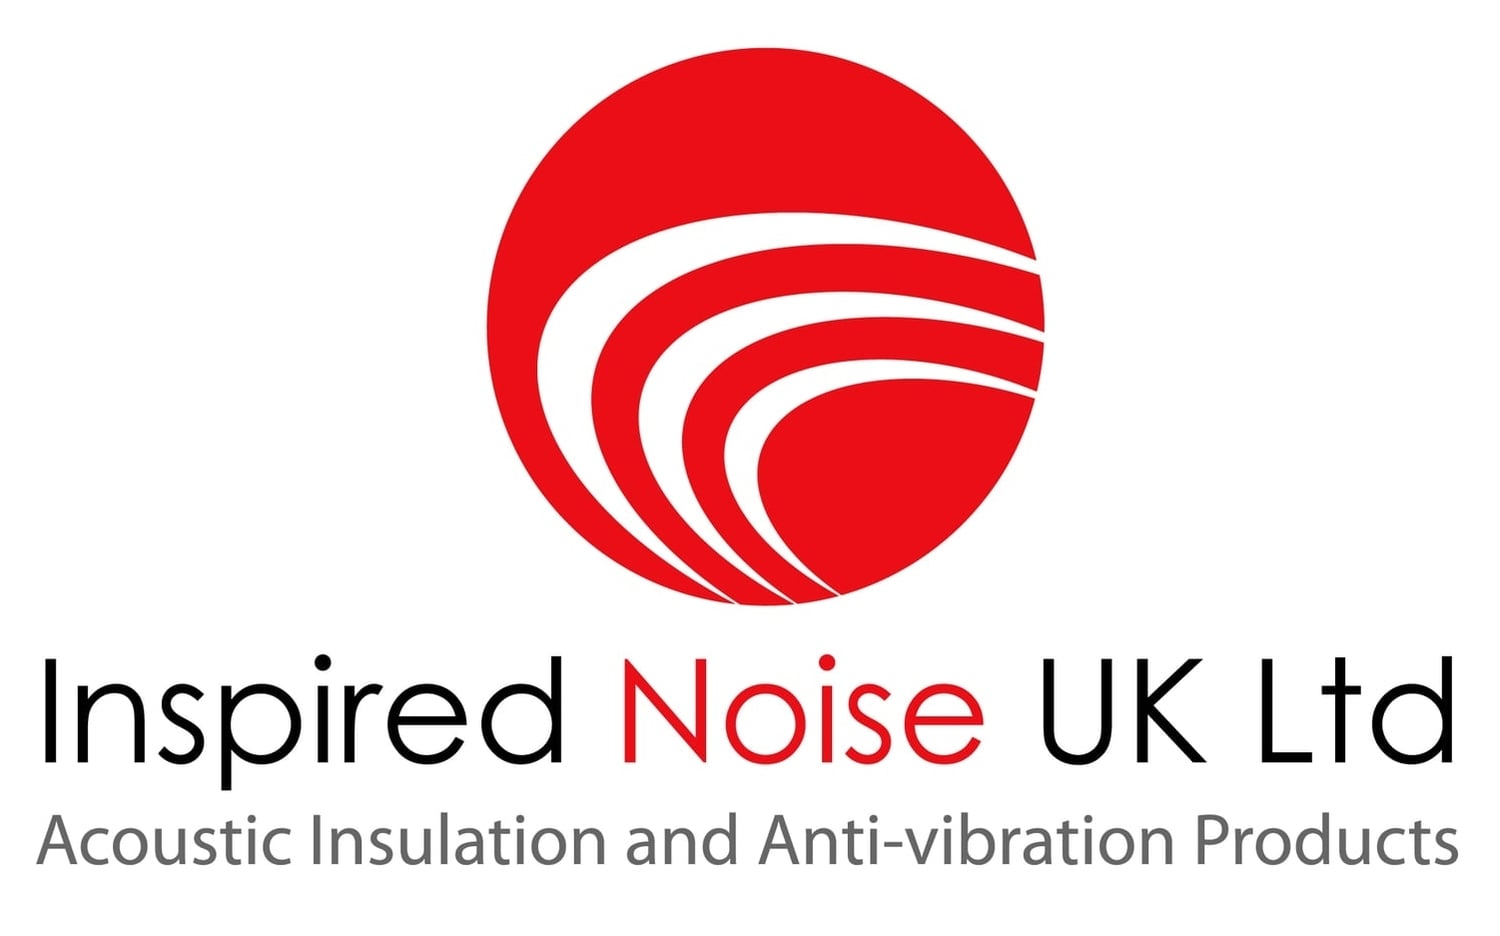 Inspired Noise UK Ltd